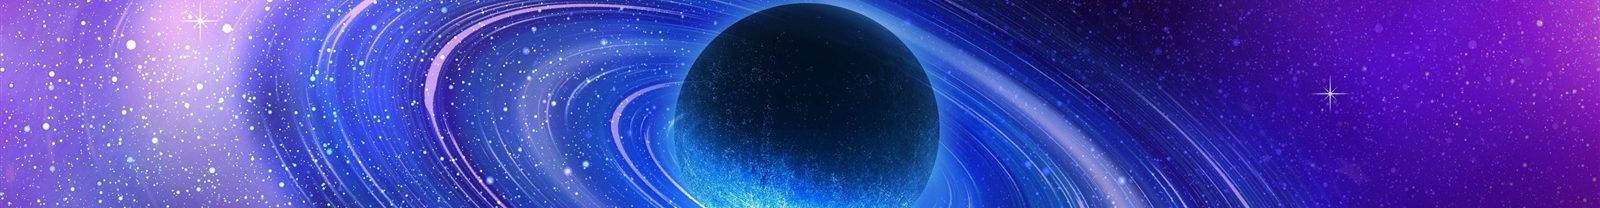 Beautiful-universe-blue-planet_1600x900 (1)